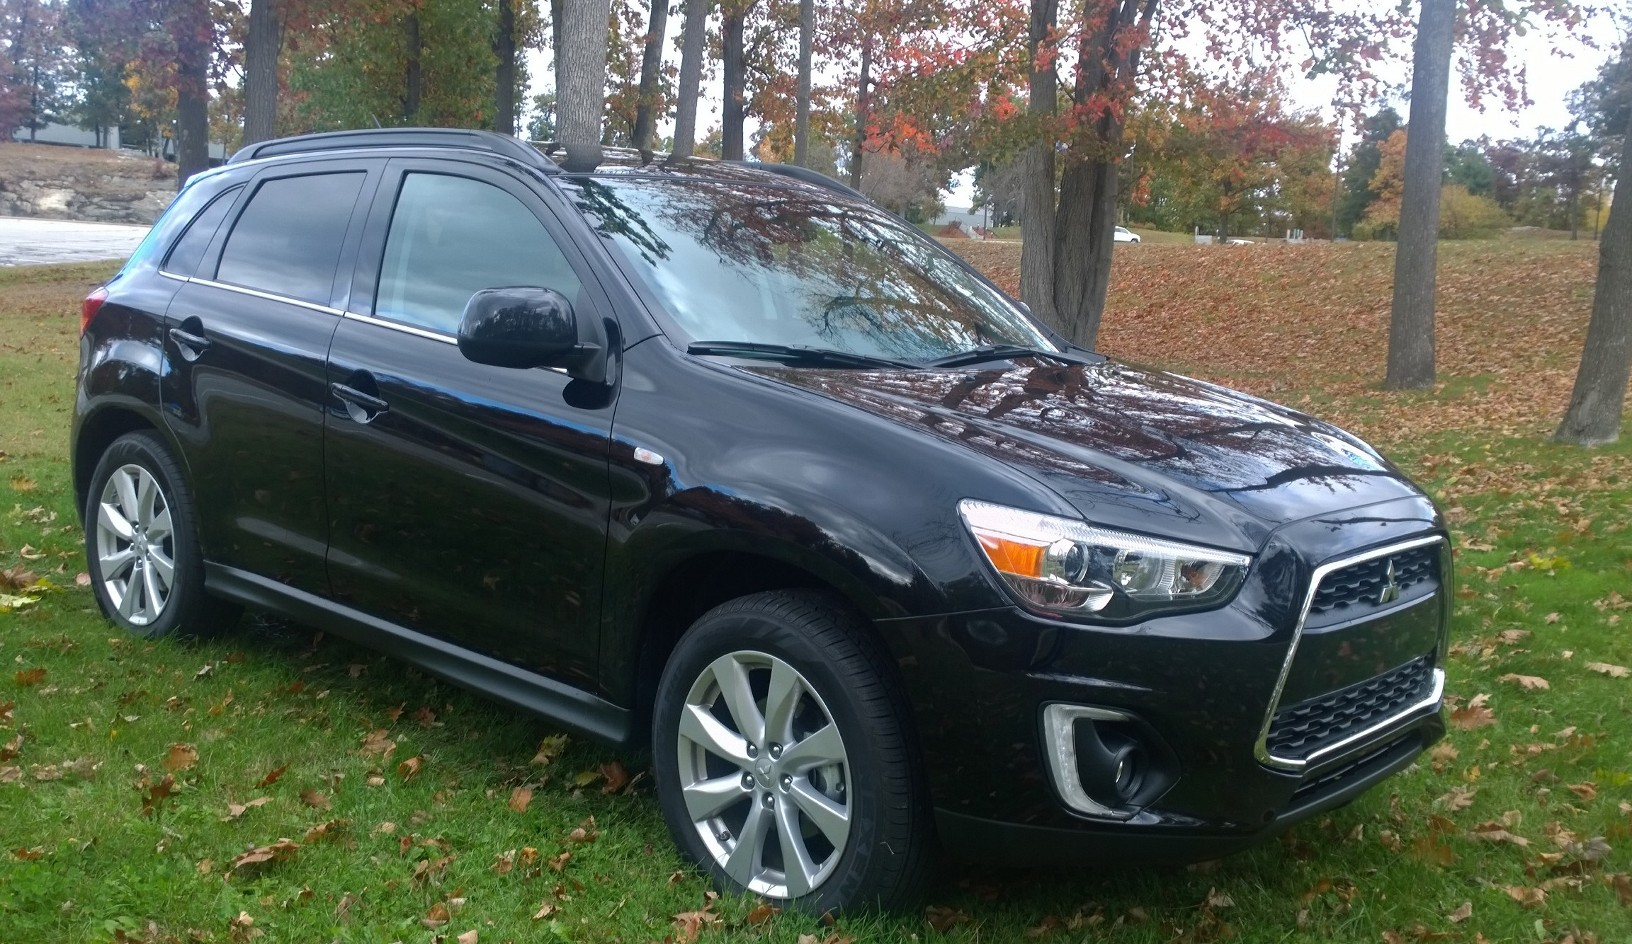 REVIEW: 2015 Mitsubishi Outlander Sport, An Urban Dweller's Crossover